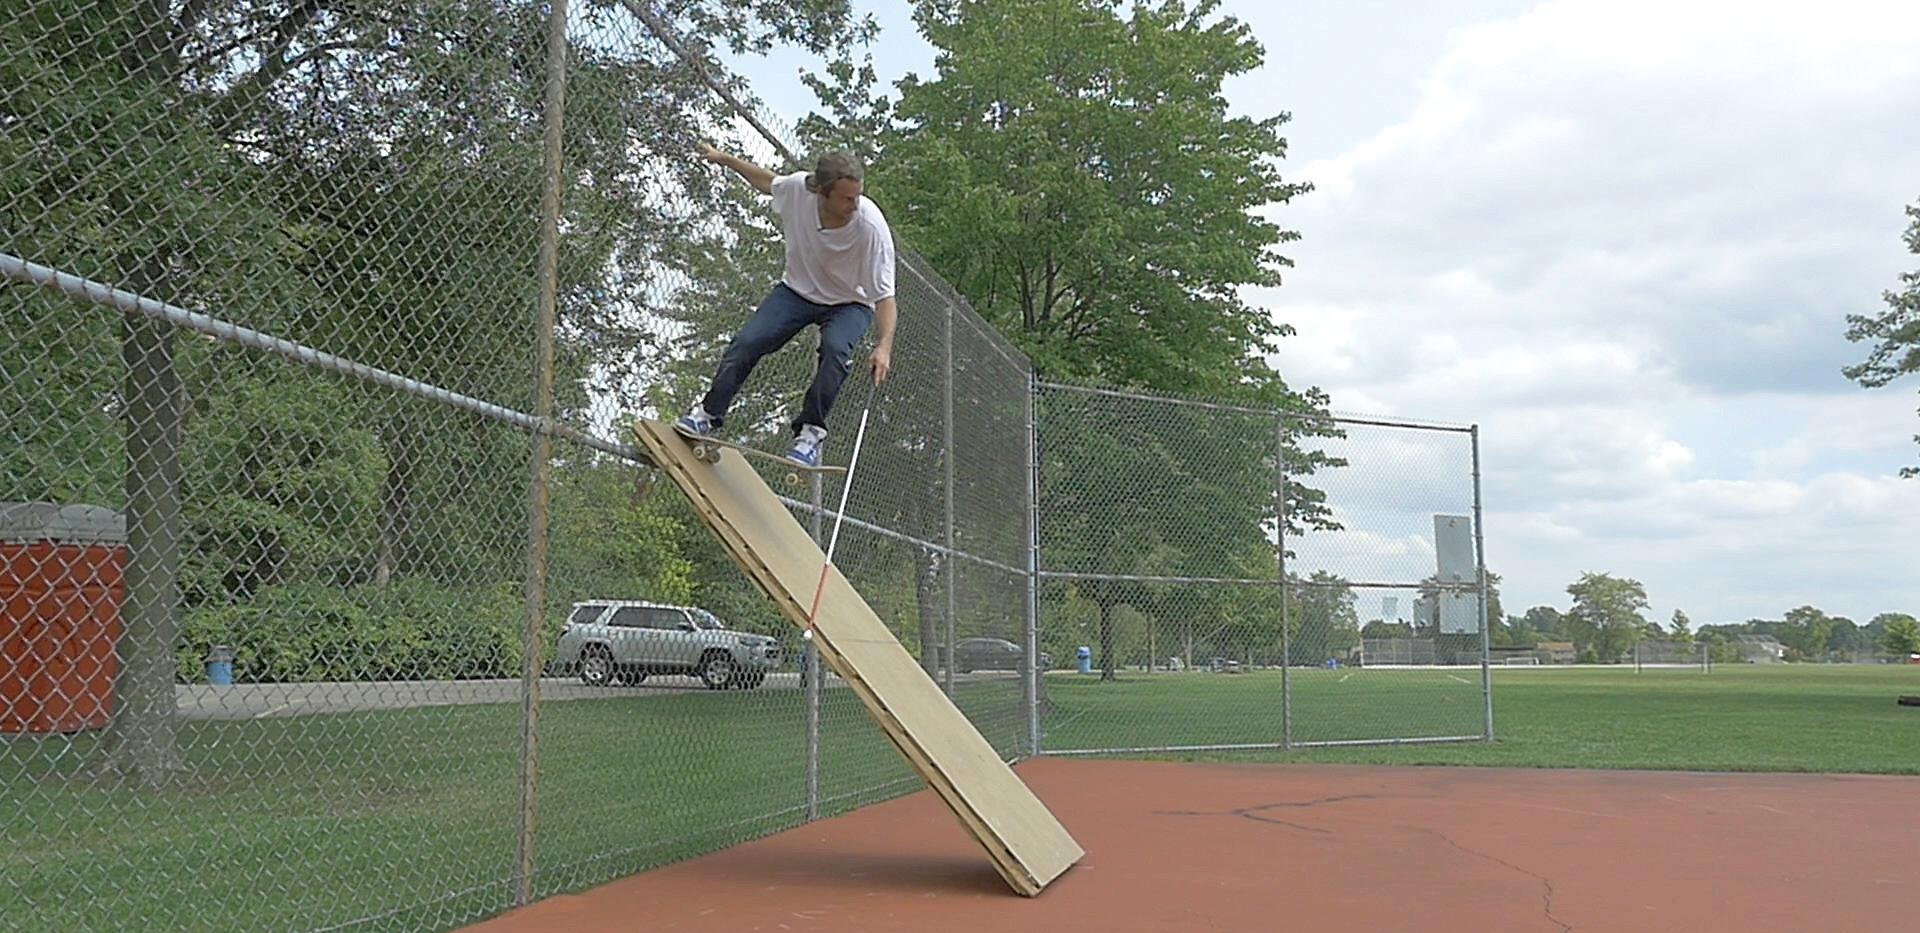 dan mancina dropping in on a makeshift ramp at a park